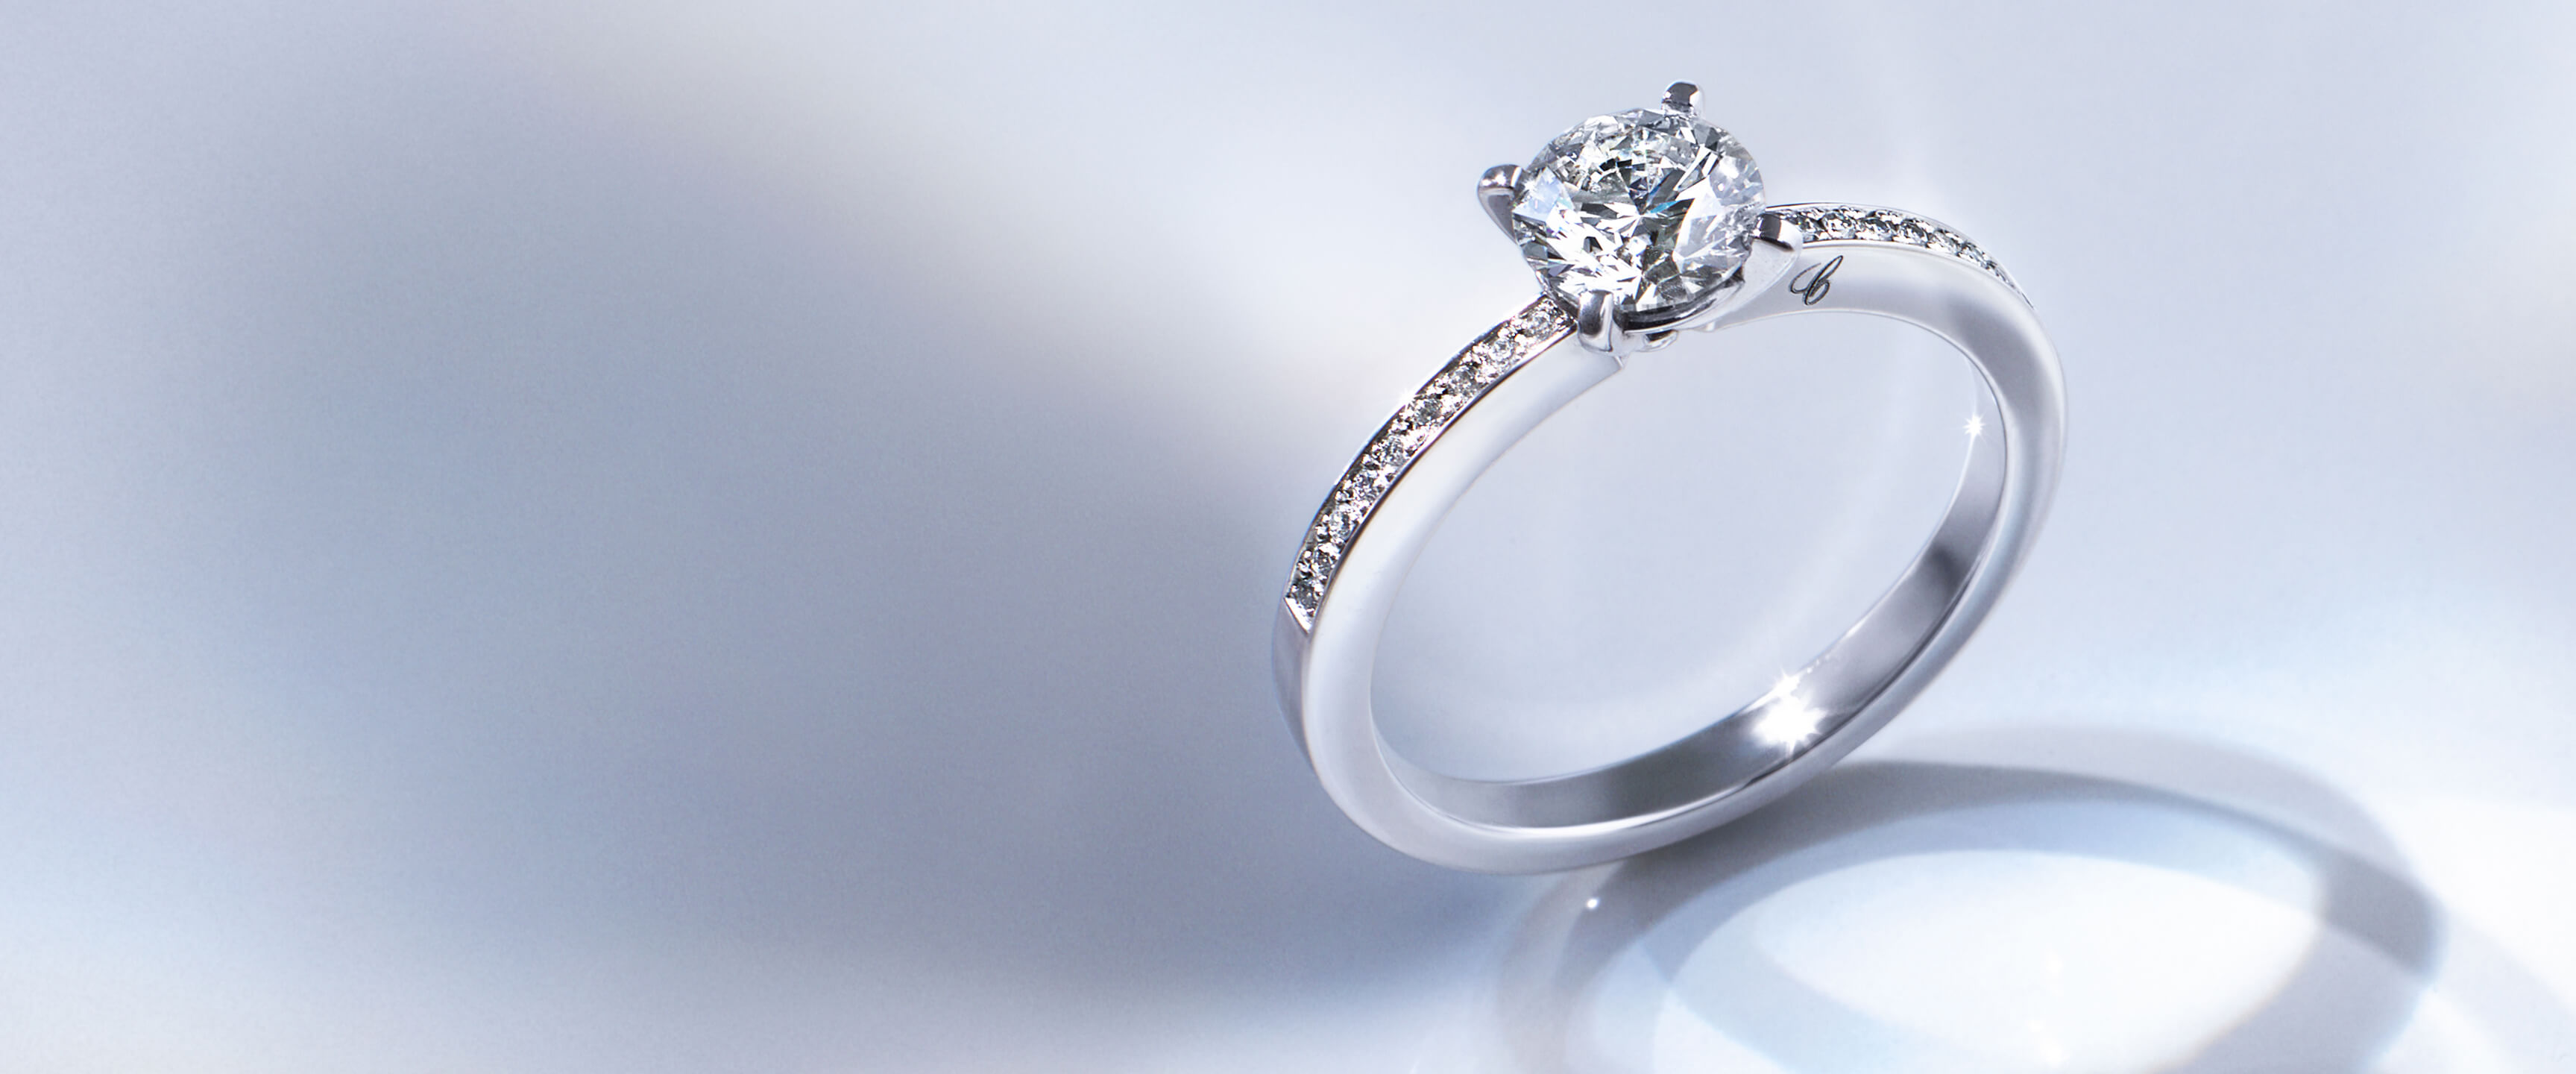 close- up view of diamond solitaire with a semi paved band and Chopard C engraved on side